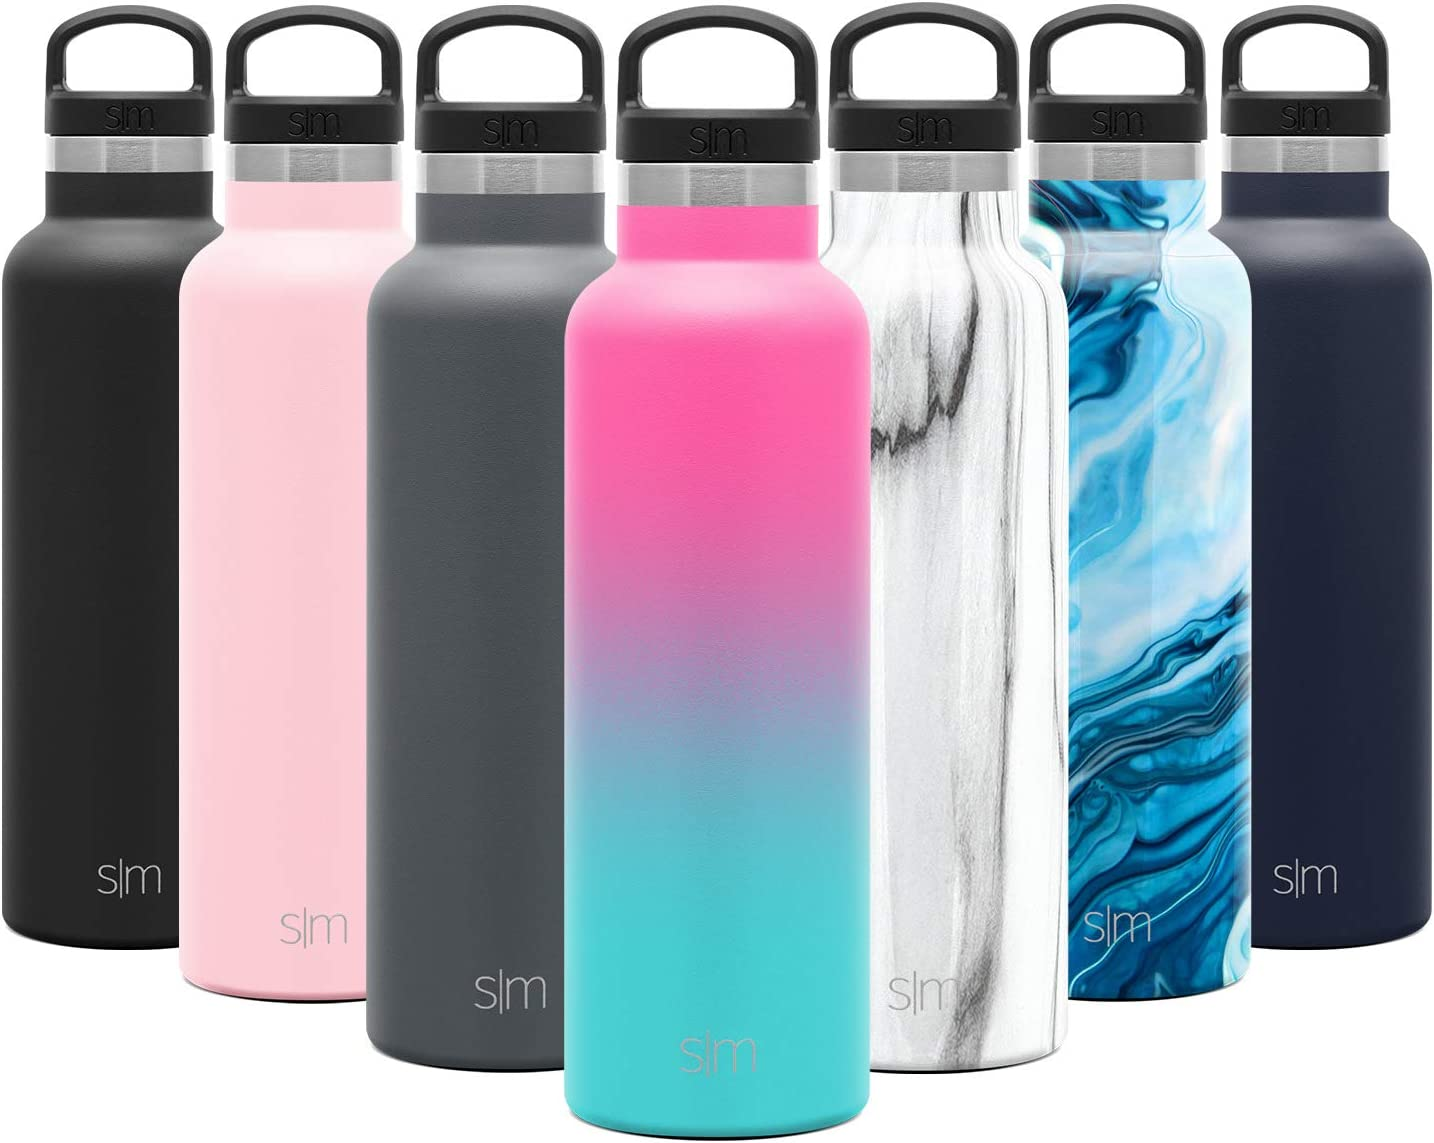 Simple Modern 20oz Ascent Water Bottle - Hydro Vacuum Insulated Tumbler Flask w/Handle Lid - Pink Double Wall Stainless Steel Reusable - Leakproof Ombre: Sorbet